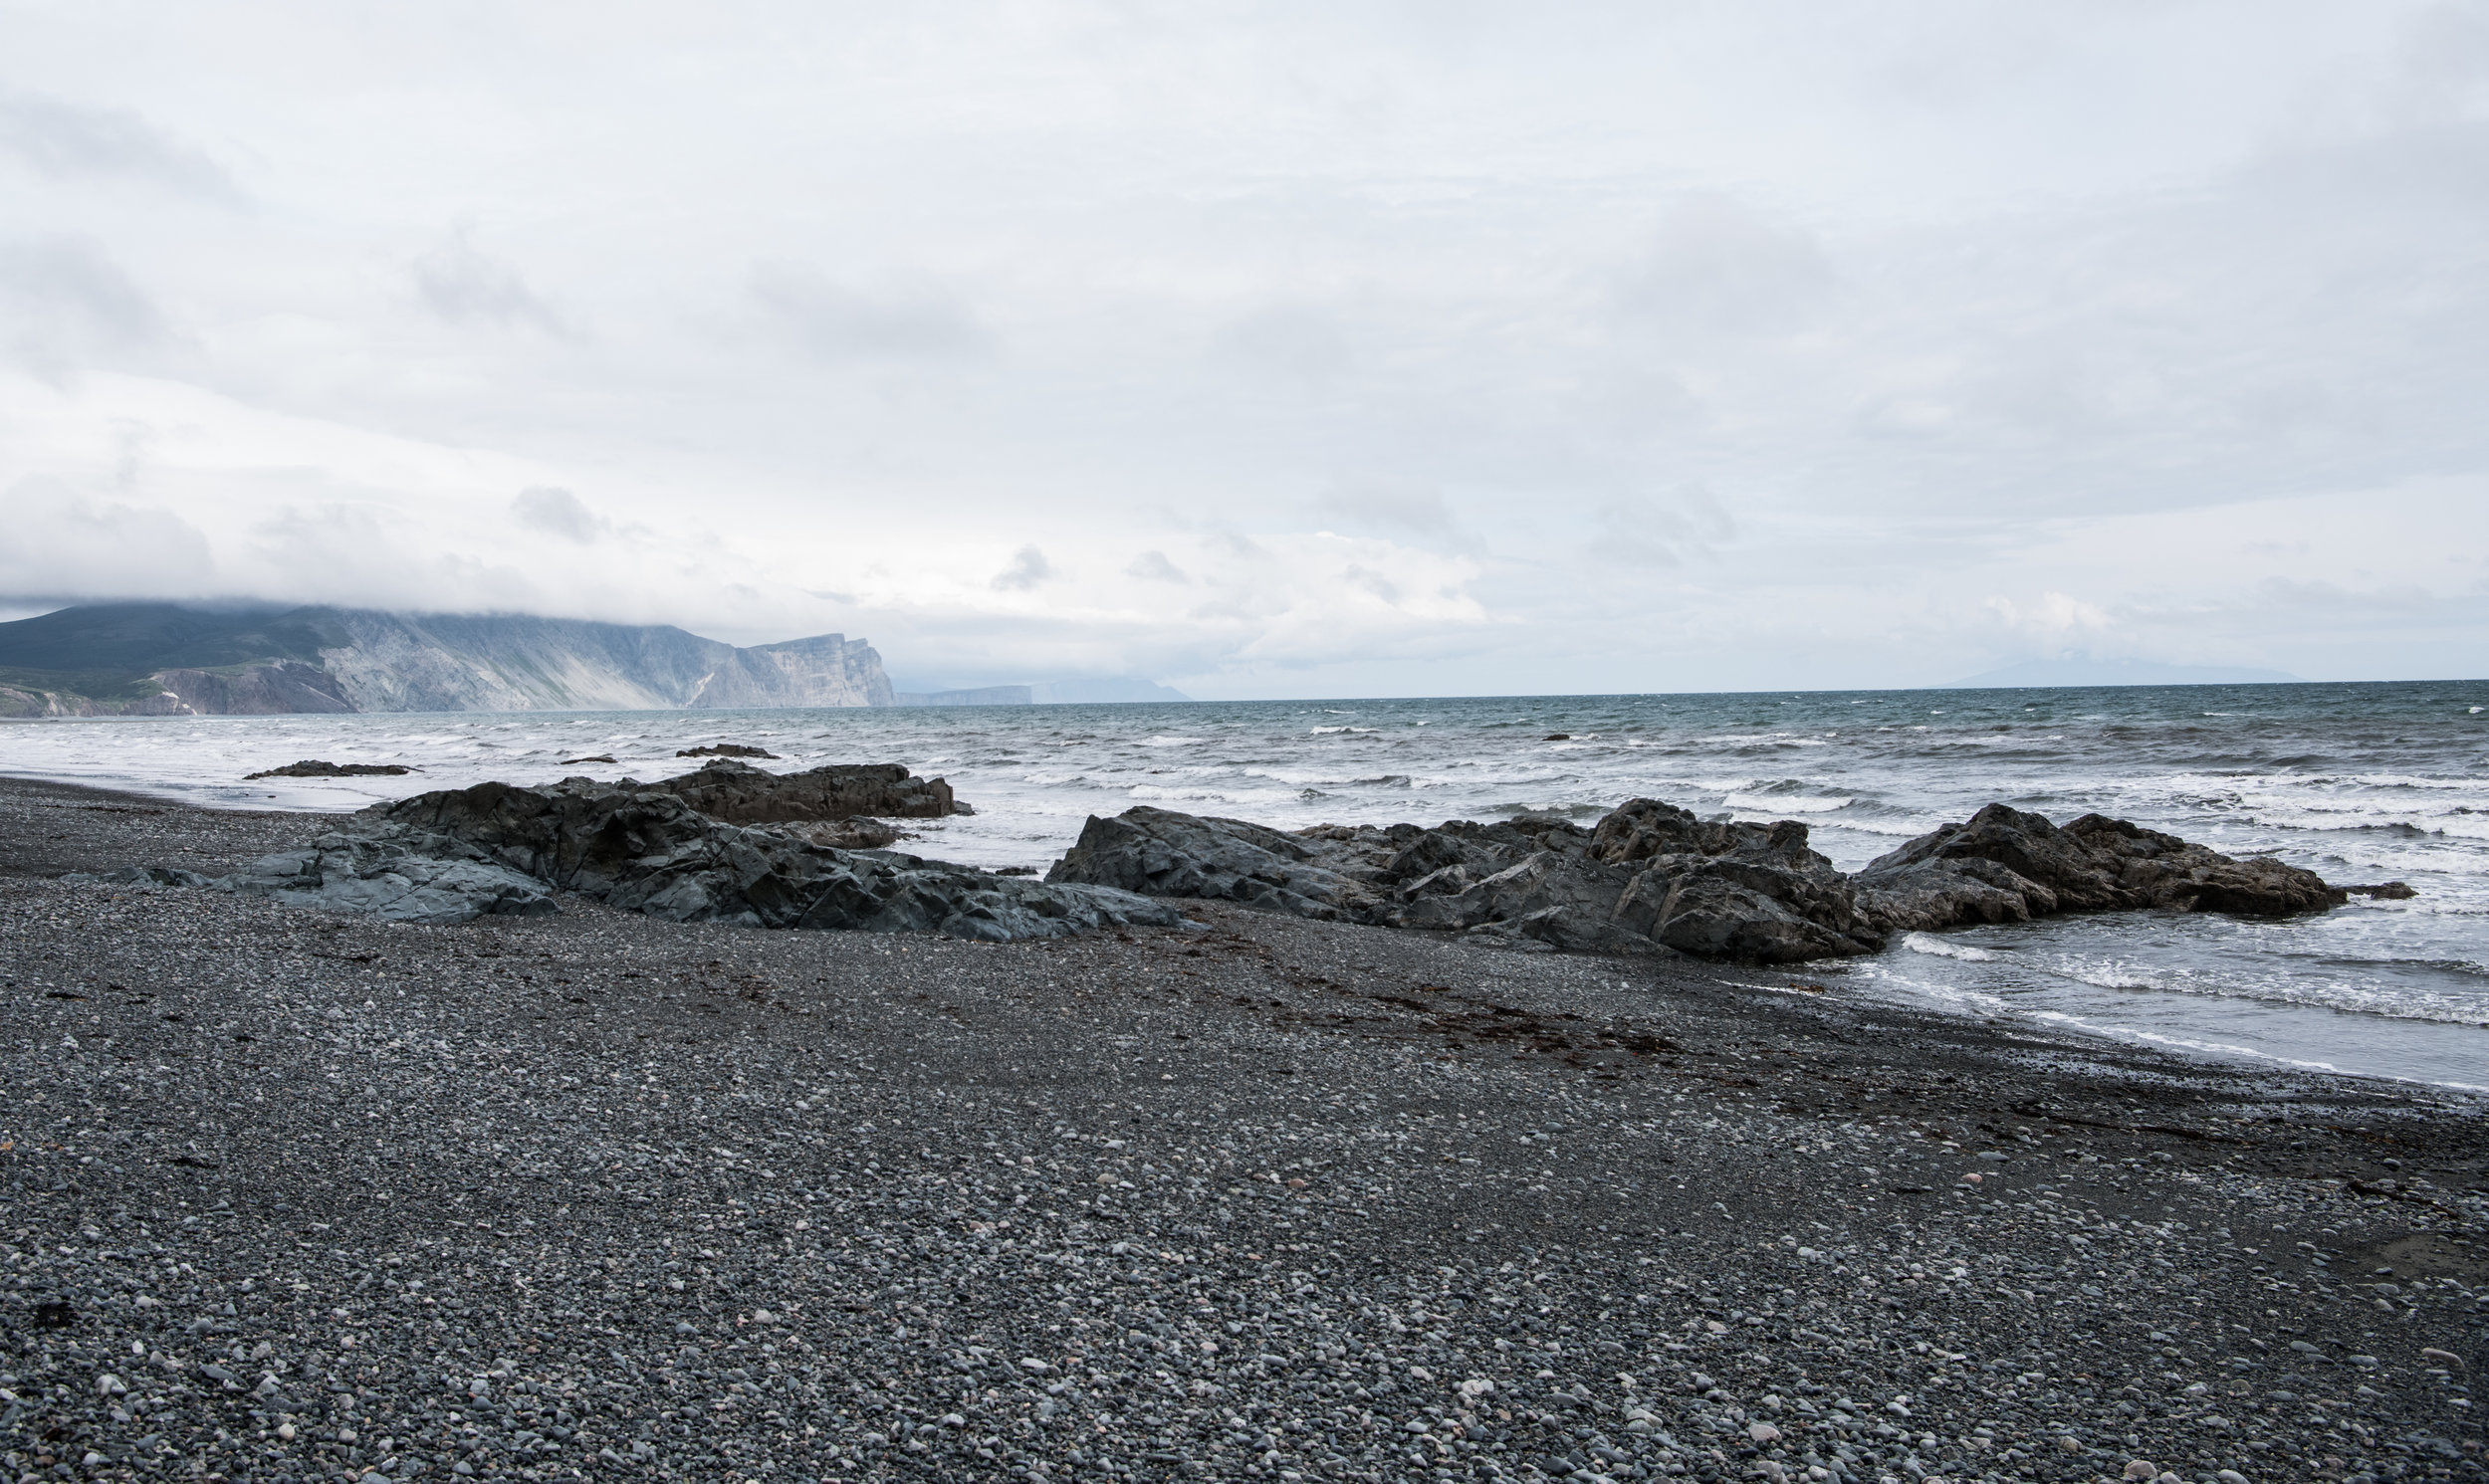 Amakdedori Beach located on the west side of Cook Inlet, just a few miles from the active volcano Mount Saint Augustine and just southwest of Homer, where Pebble proposes a massive industrial complex and port.  Photo by Jayme Dittmar